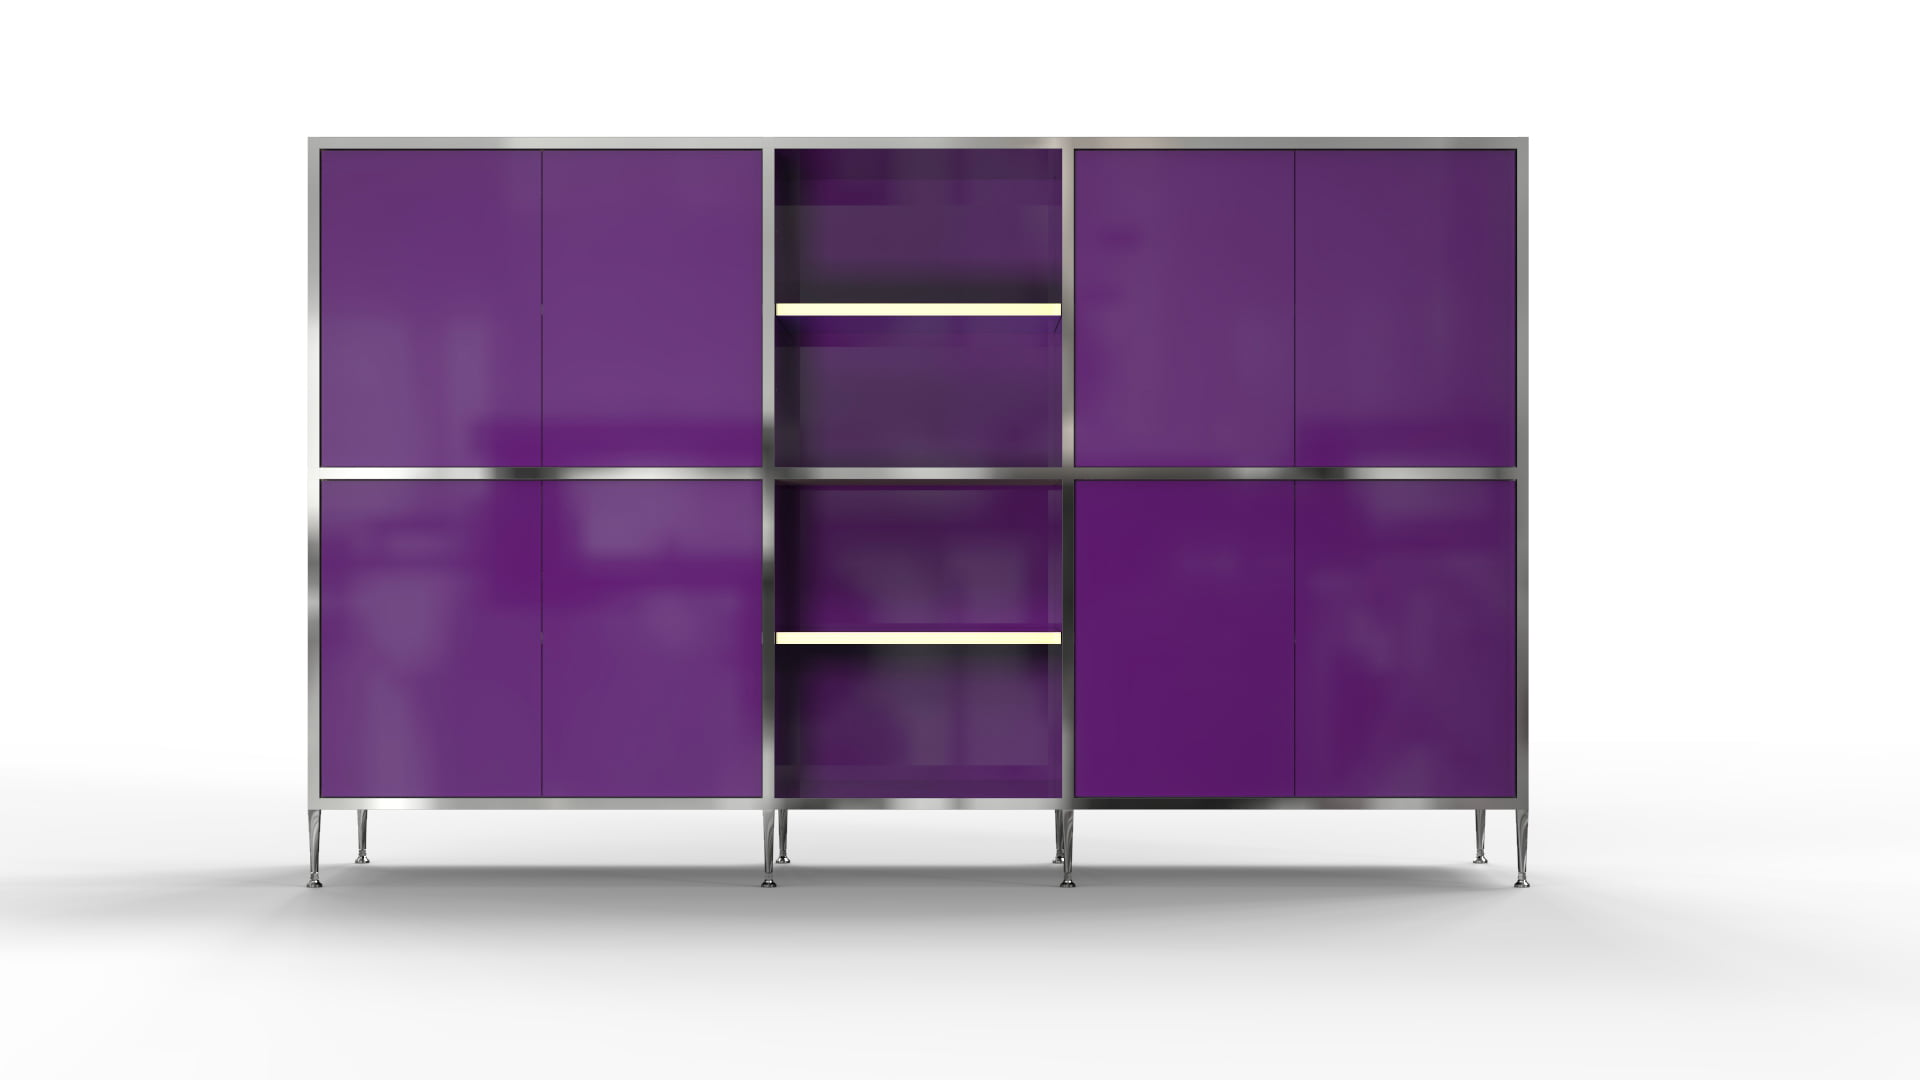 credenza 3 configuration modular adaptive furniture system